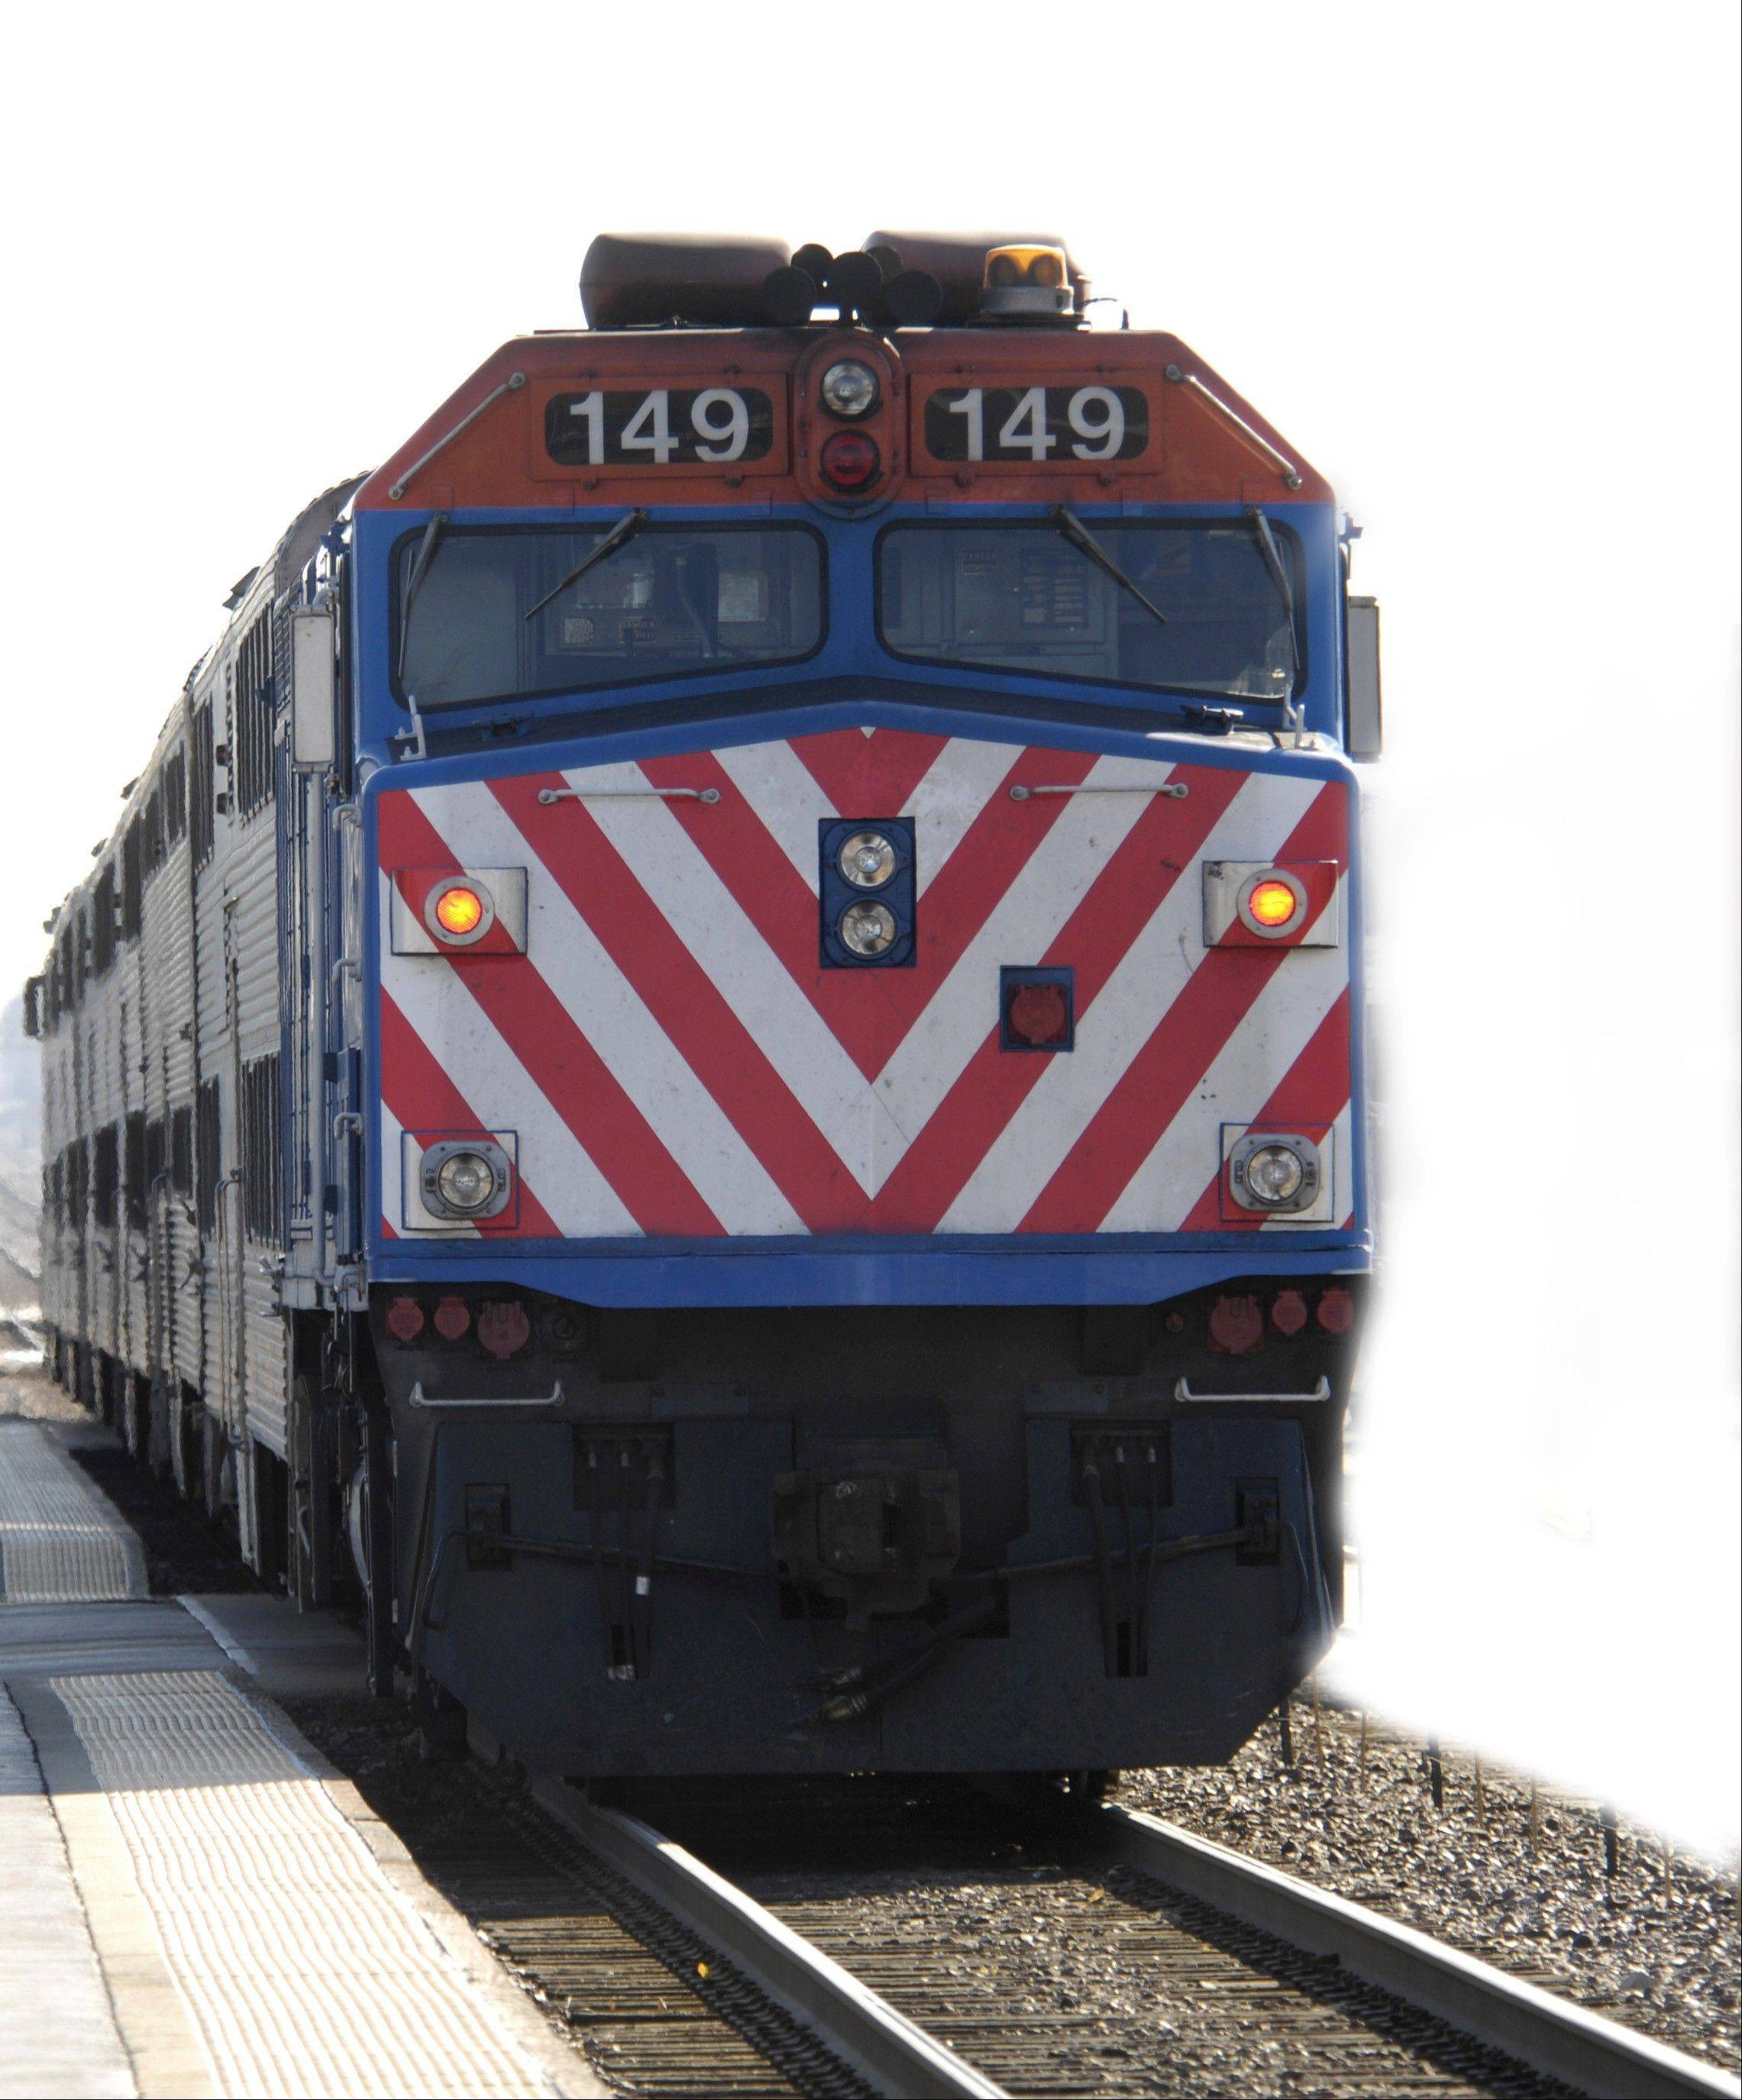 Metra and Pace riders have a lot at stake as Congress starts debating transportation funding again. An initial five-year, $260 billion plan offered last month has been pulled off the table, and now Congress is focusing on a more short-term funding bill.